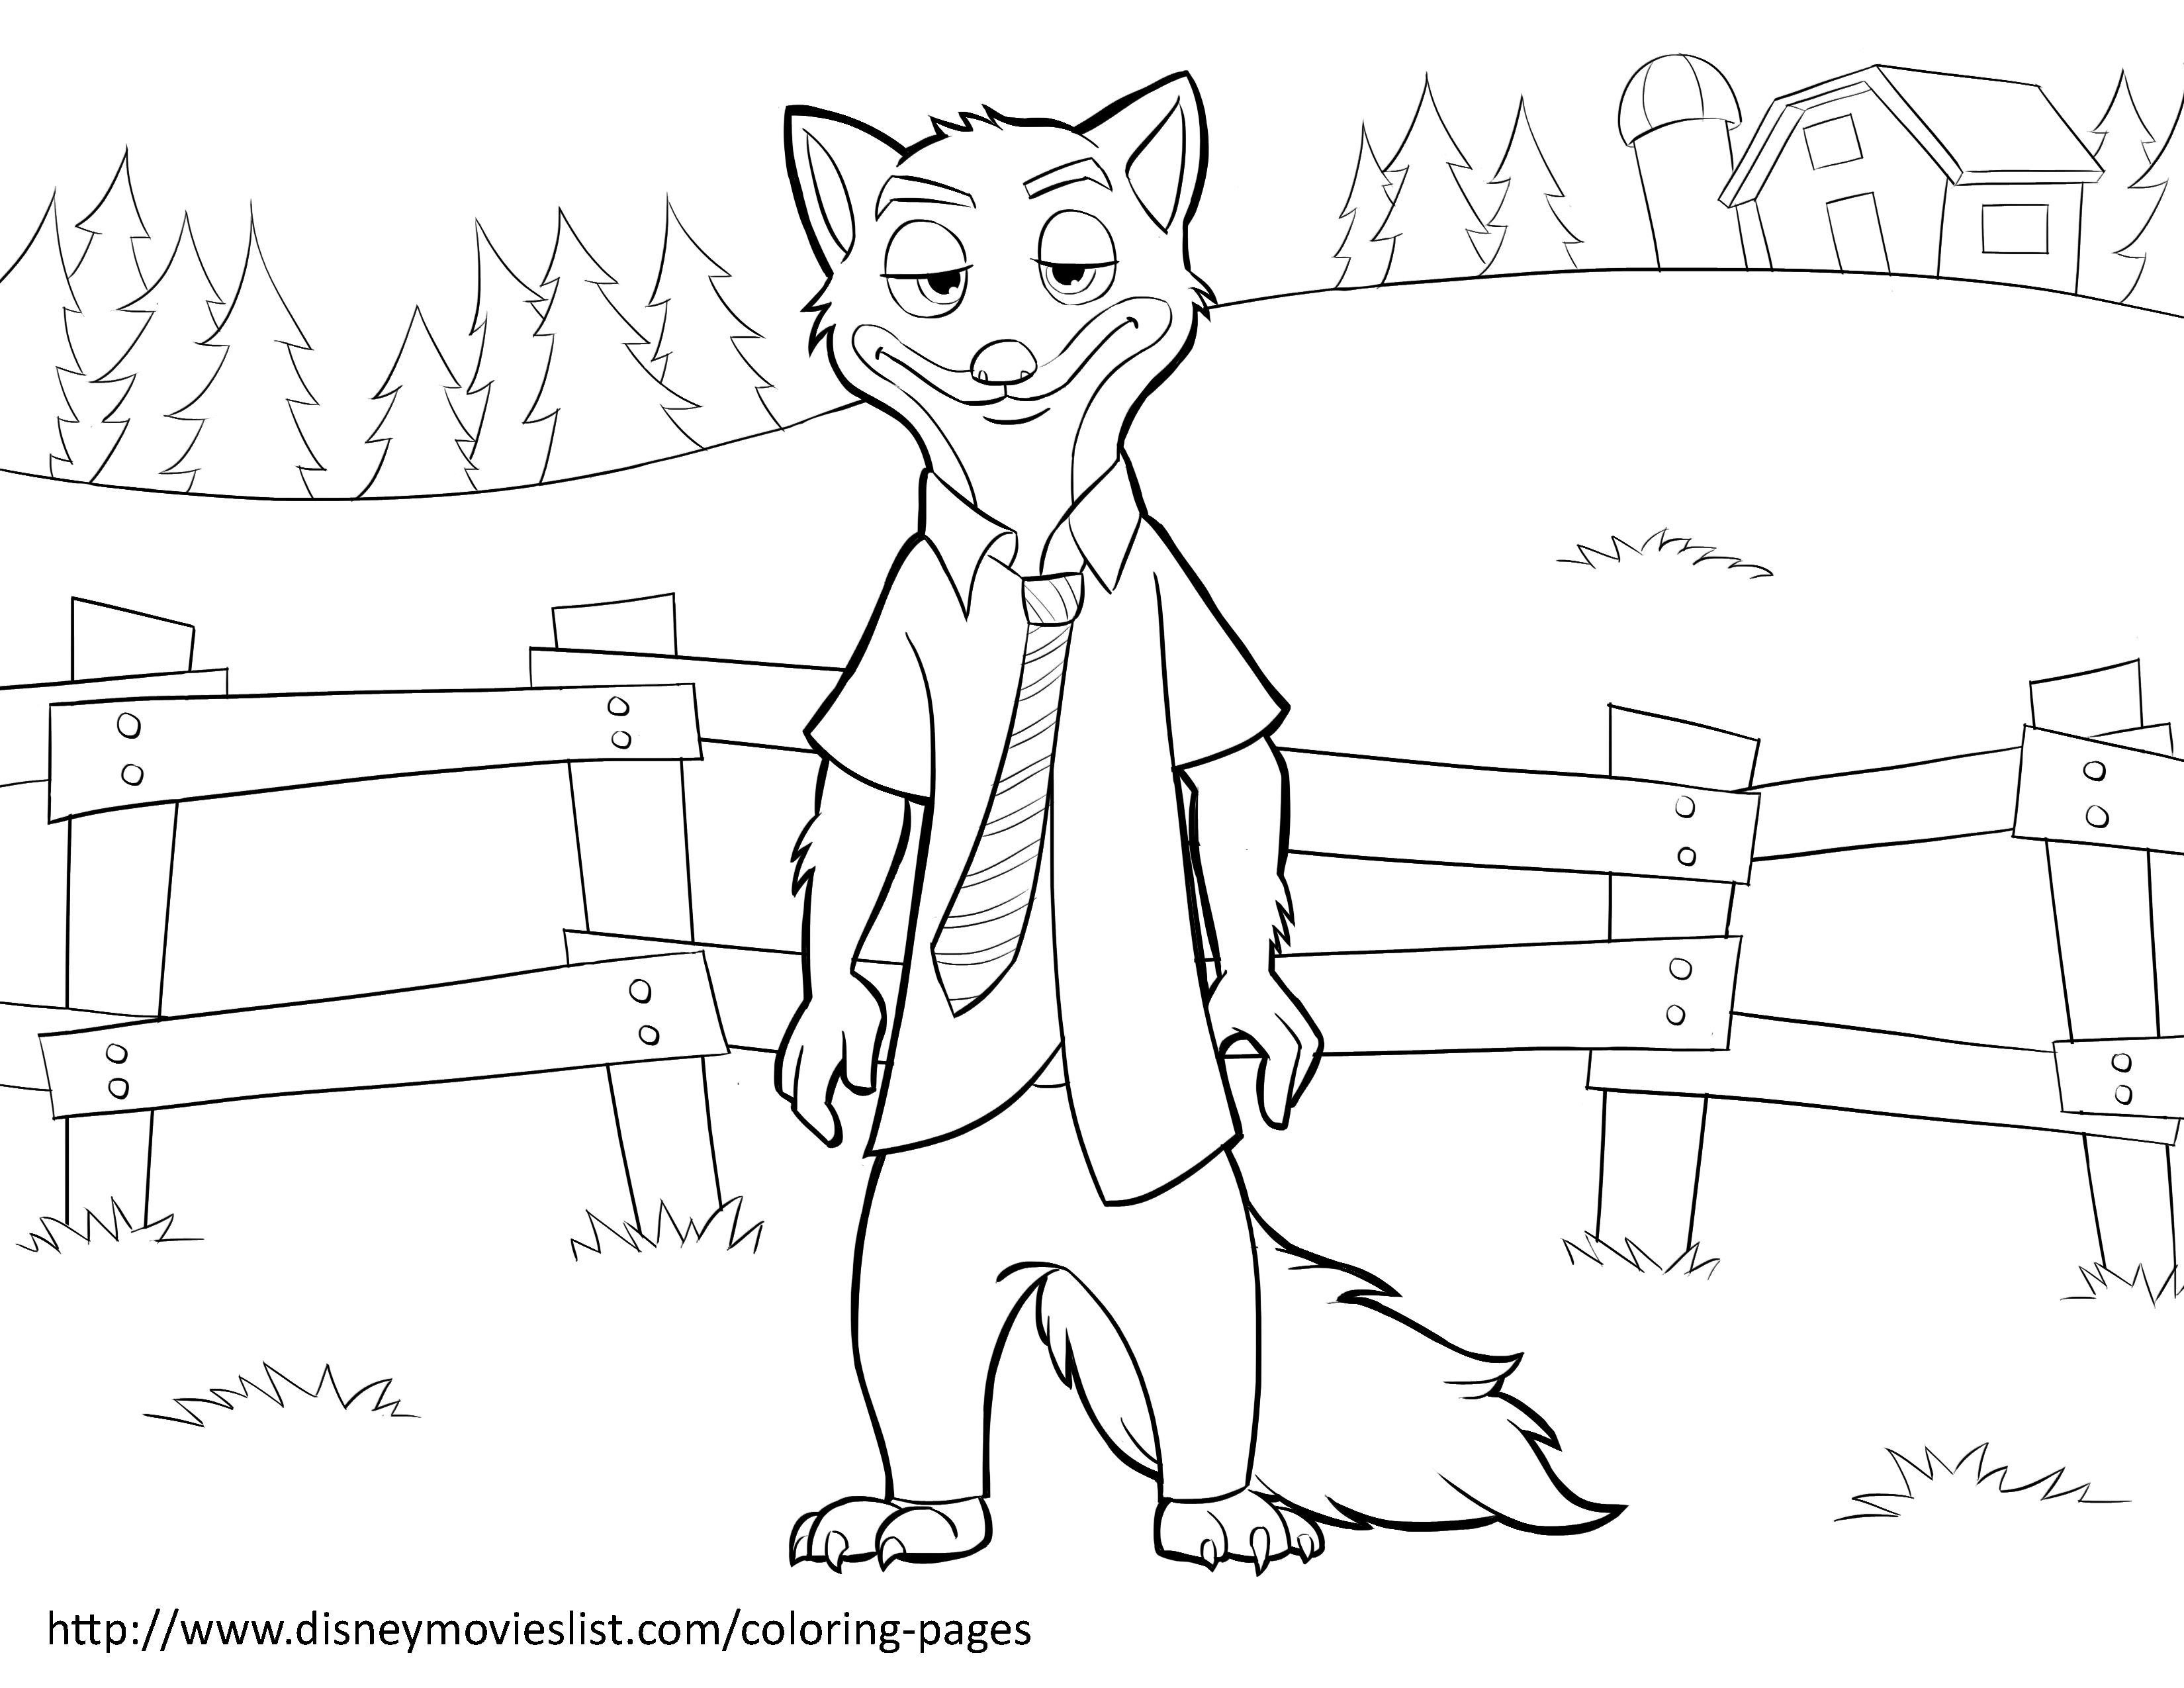 Disneyus zootopianick wilde coloring page colouringin pages